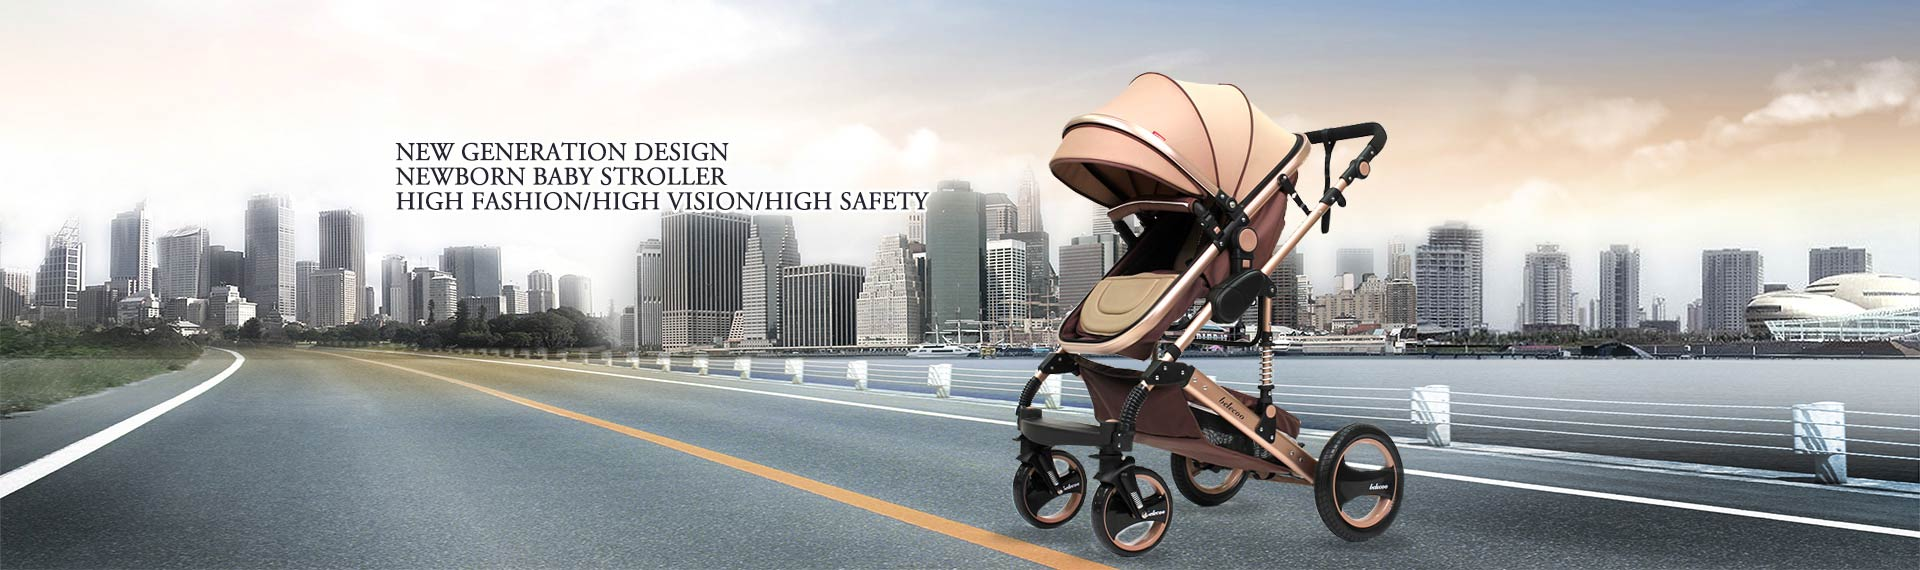 17+ Belecoo stroller price philippines information